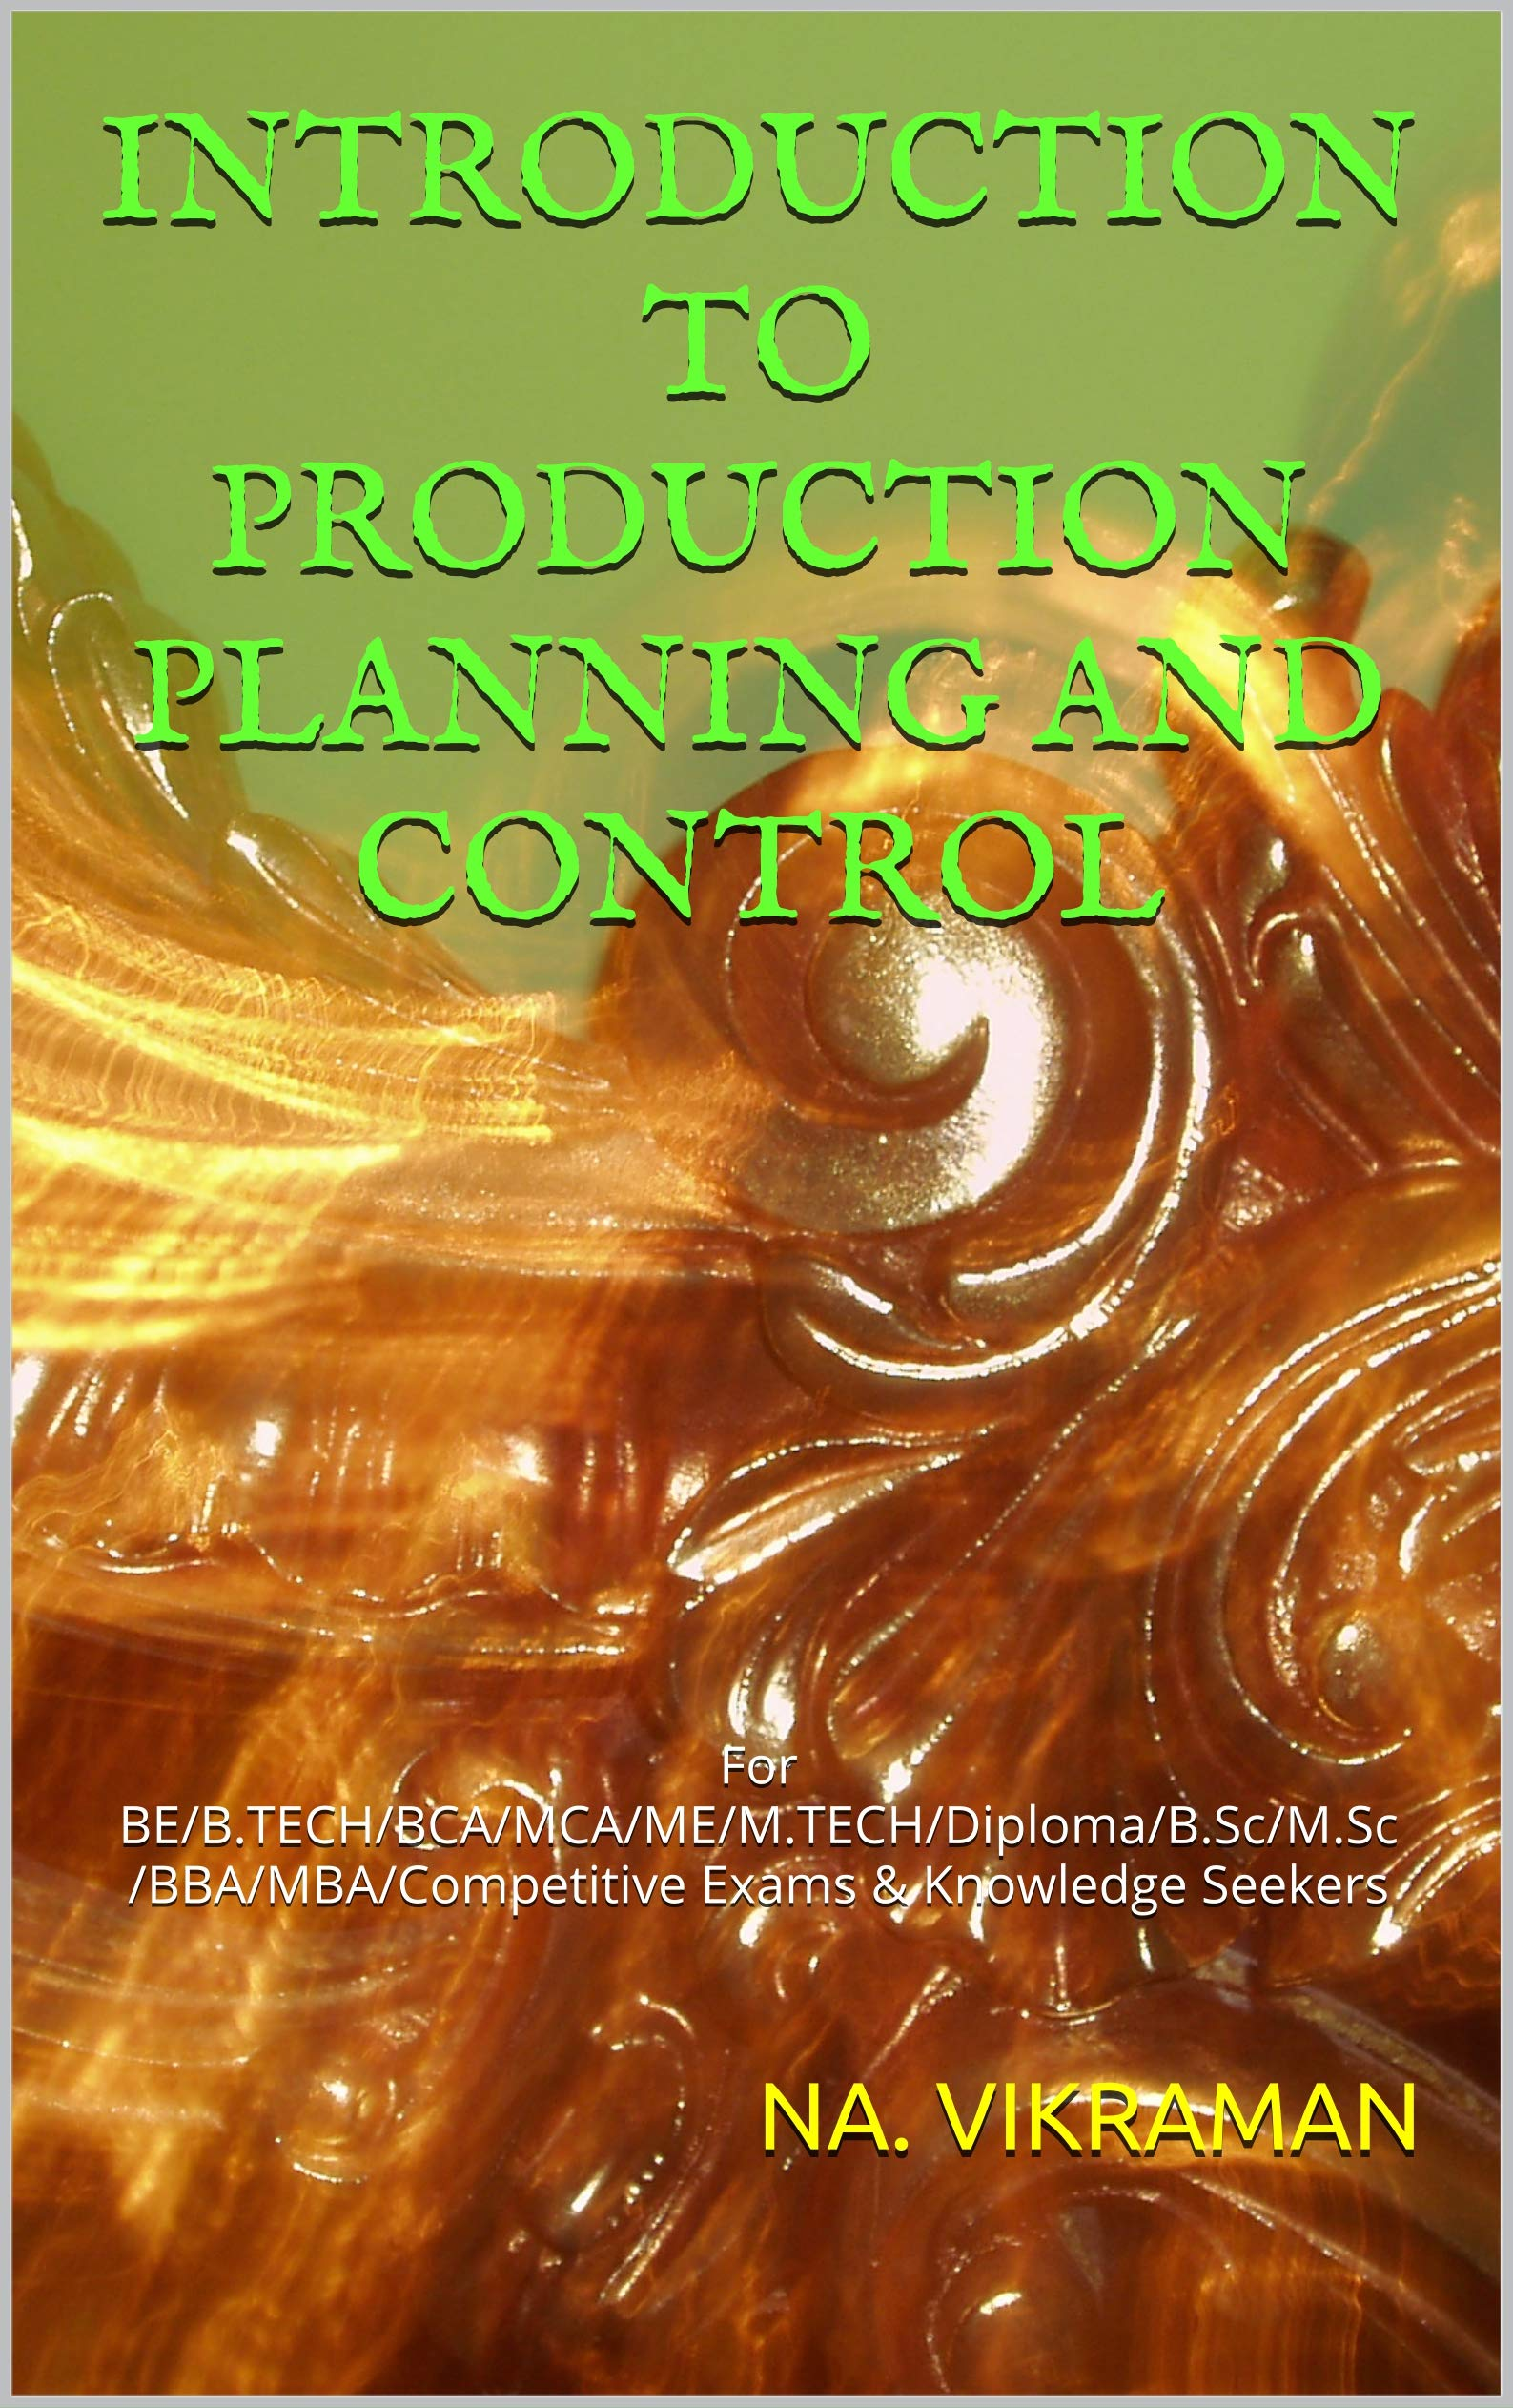 INTRODUCTION TO PRODUCTION PLANNING AND CONTROL: For BE/B.TECH/BCA/MCA/ME/M.TECH/Diploma/B.Sc/M.Sc/BBA/MBA/Competitive Exams & Knowledge Seekers (2020 Book 175)